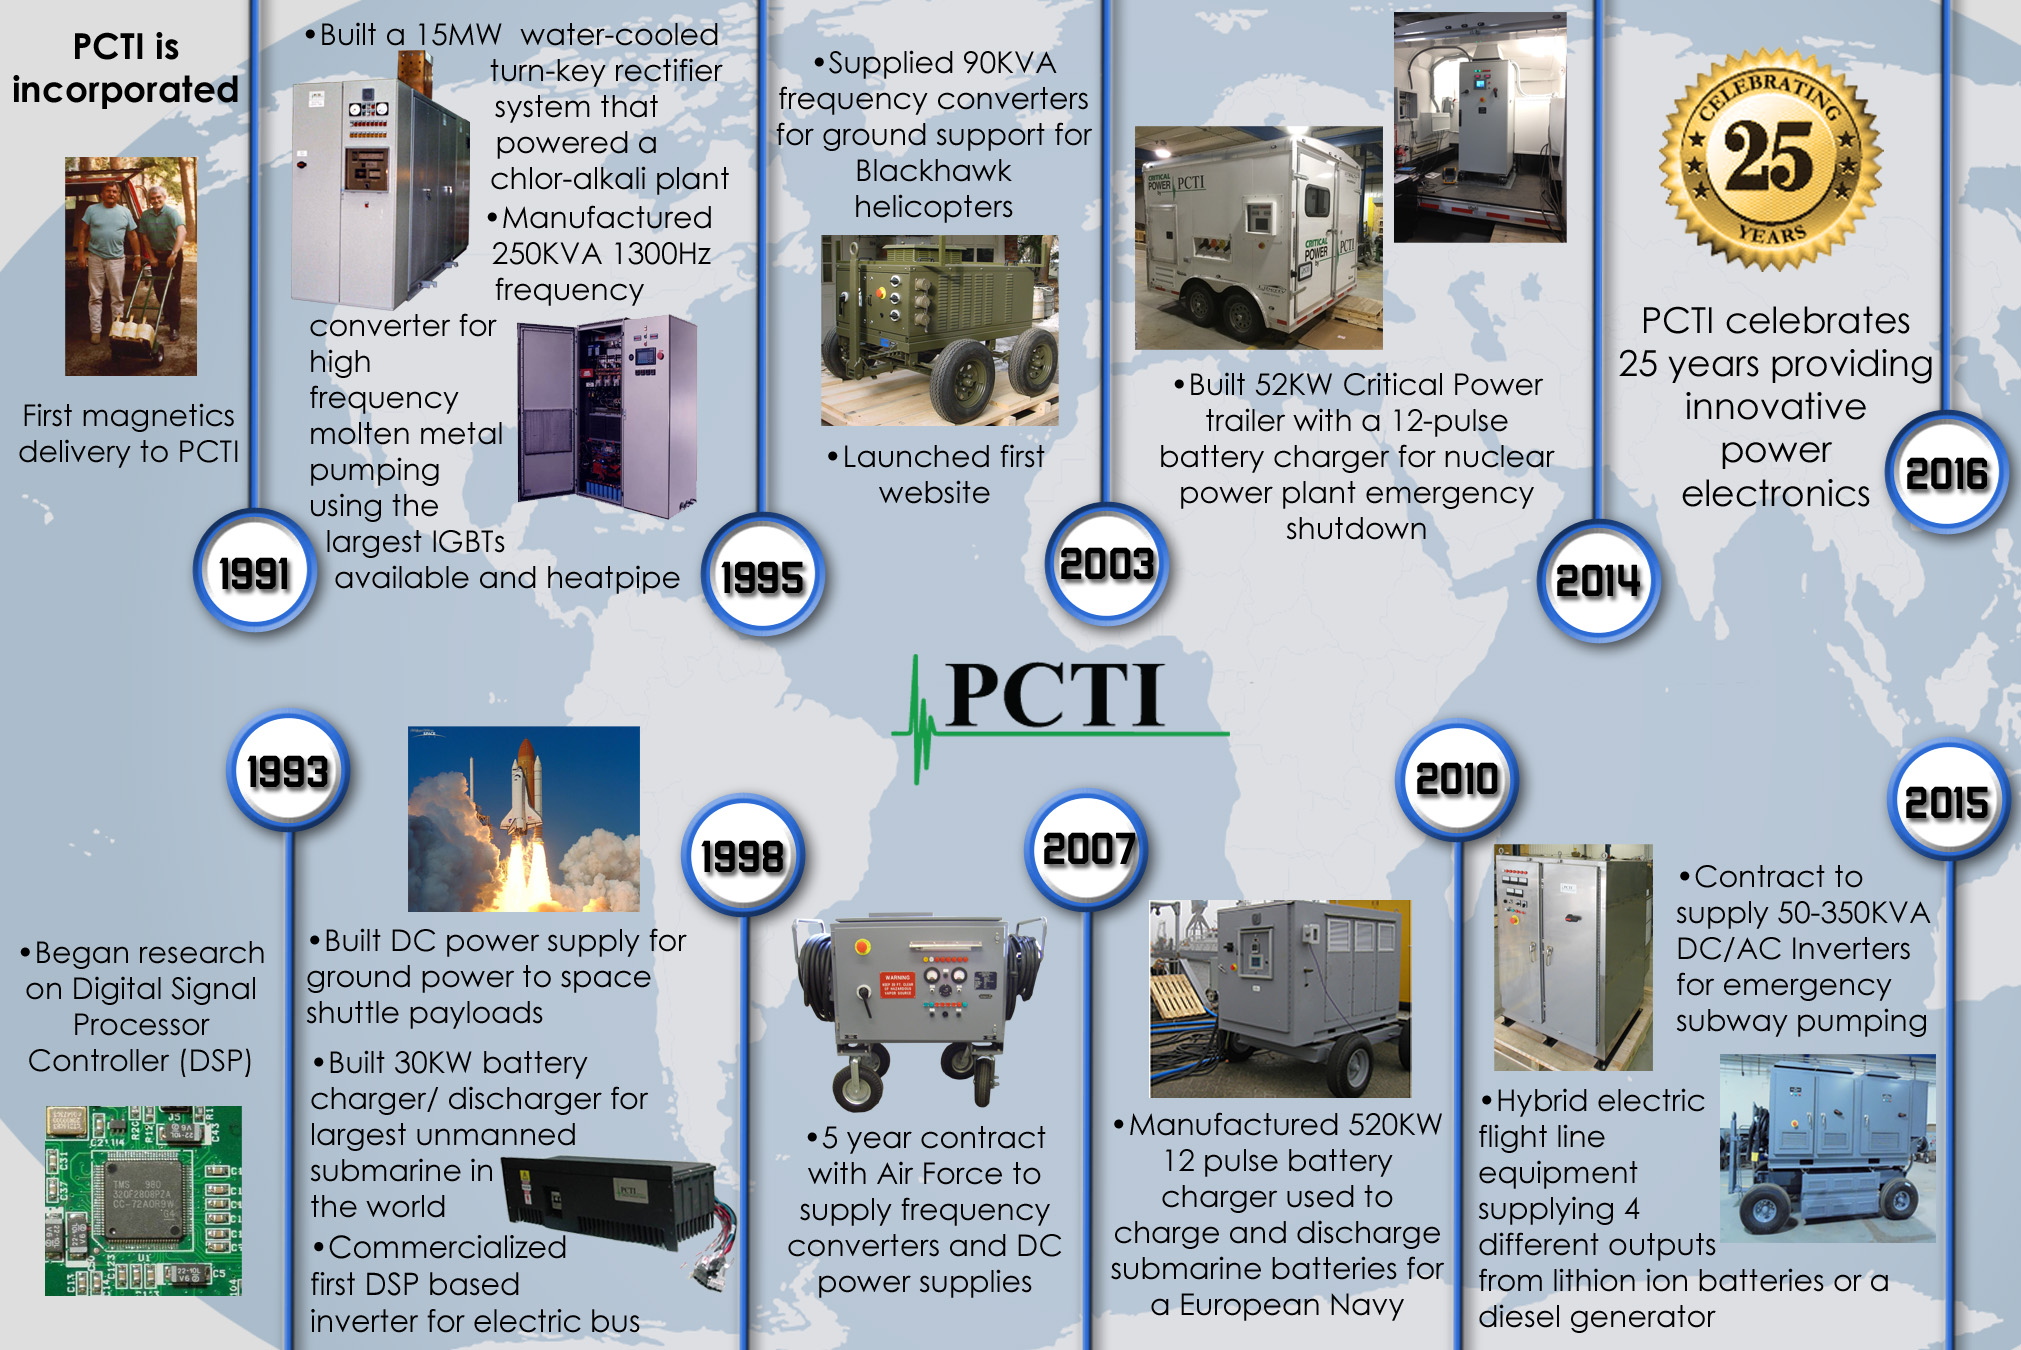 25 Years at PCTI Timeline